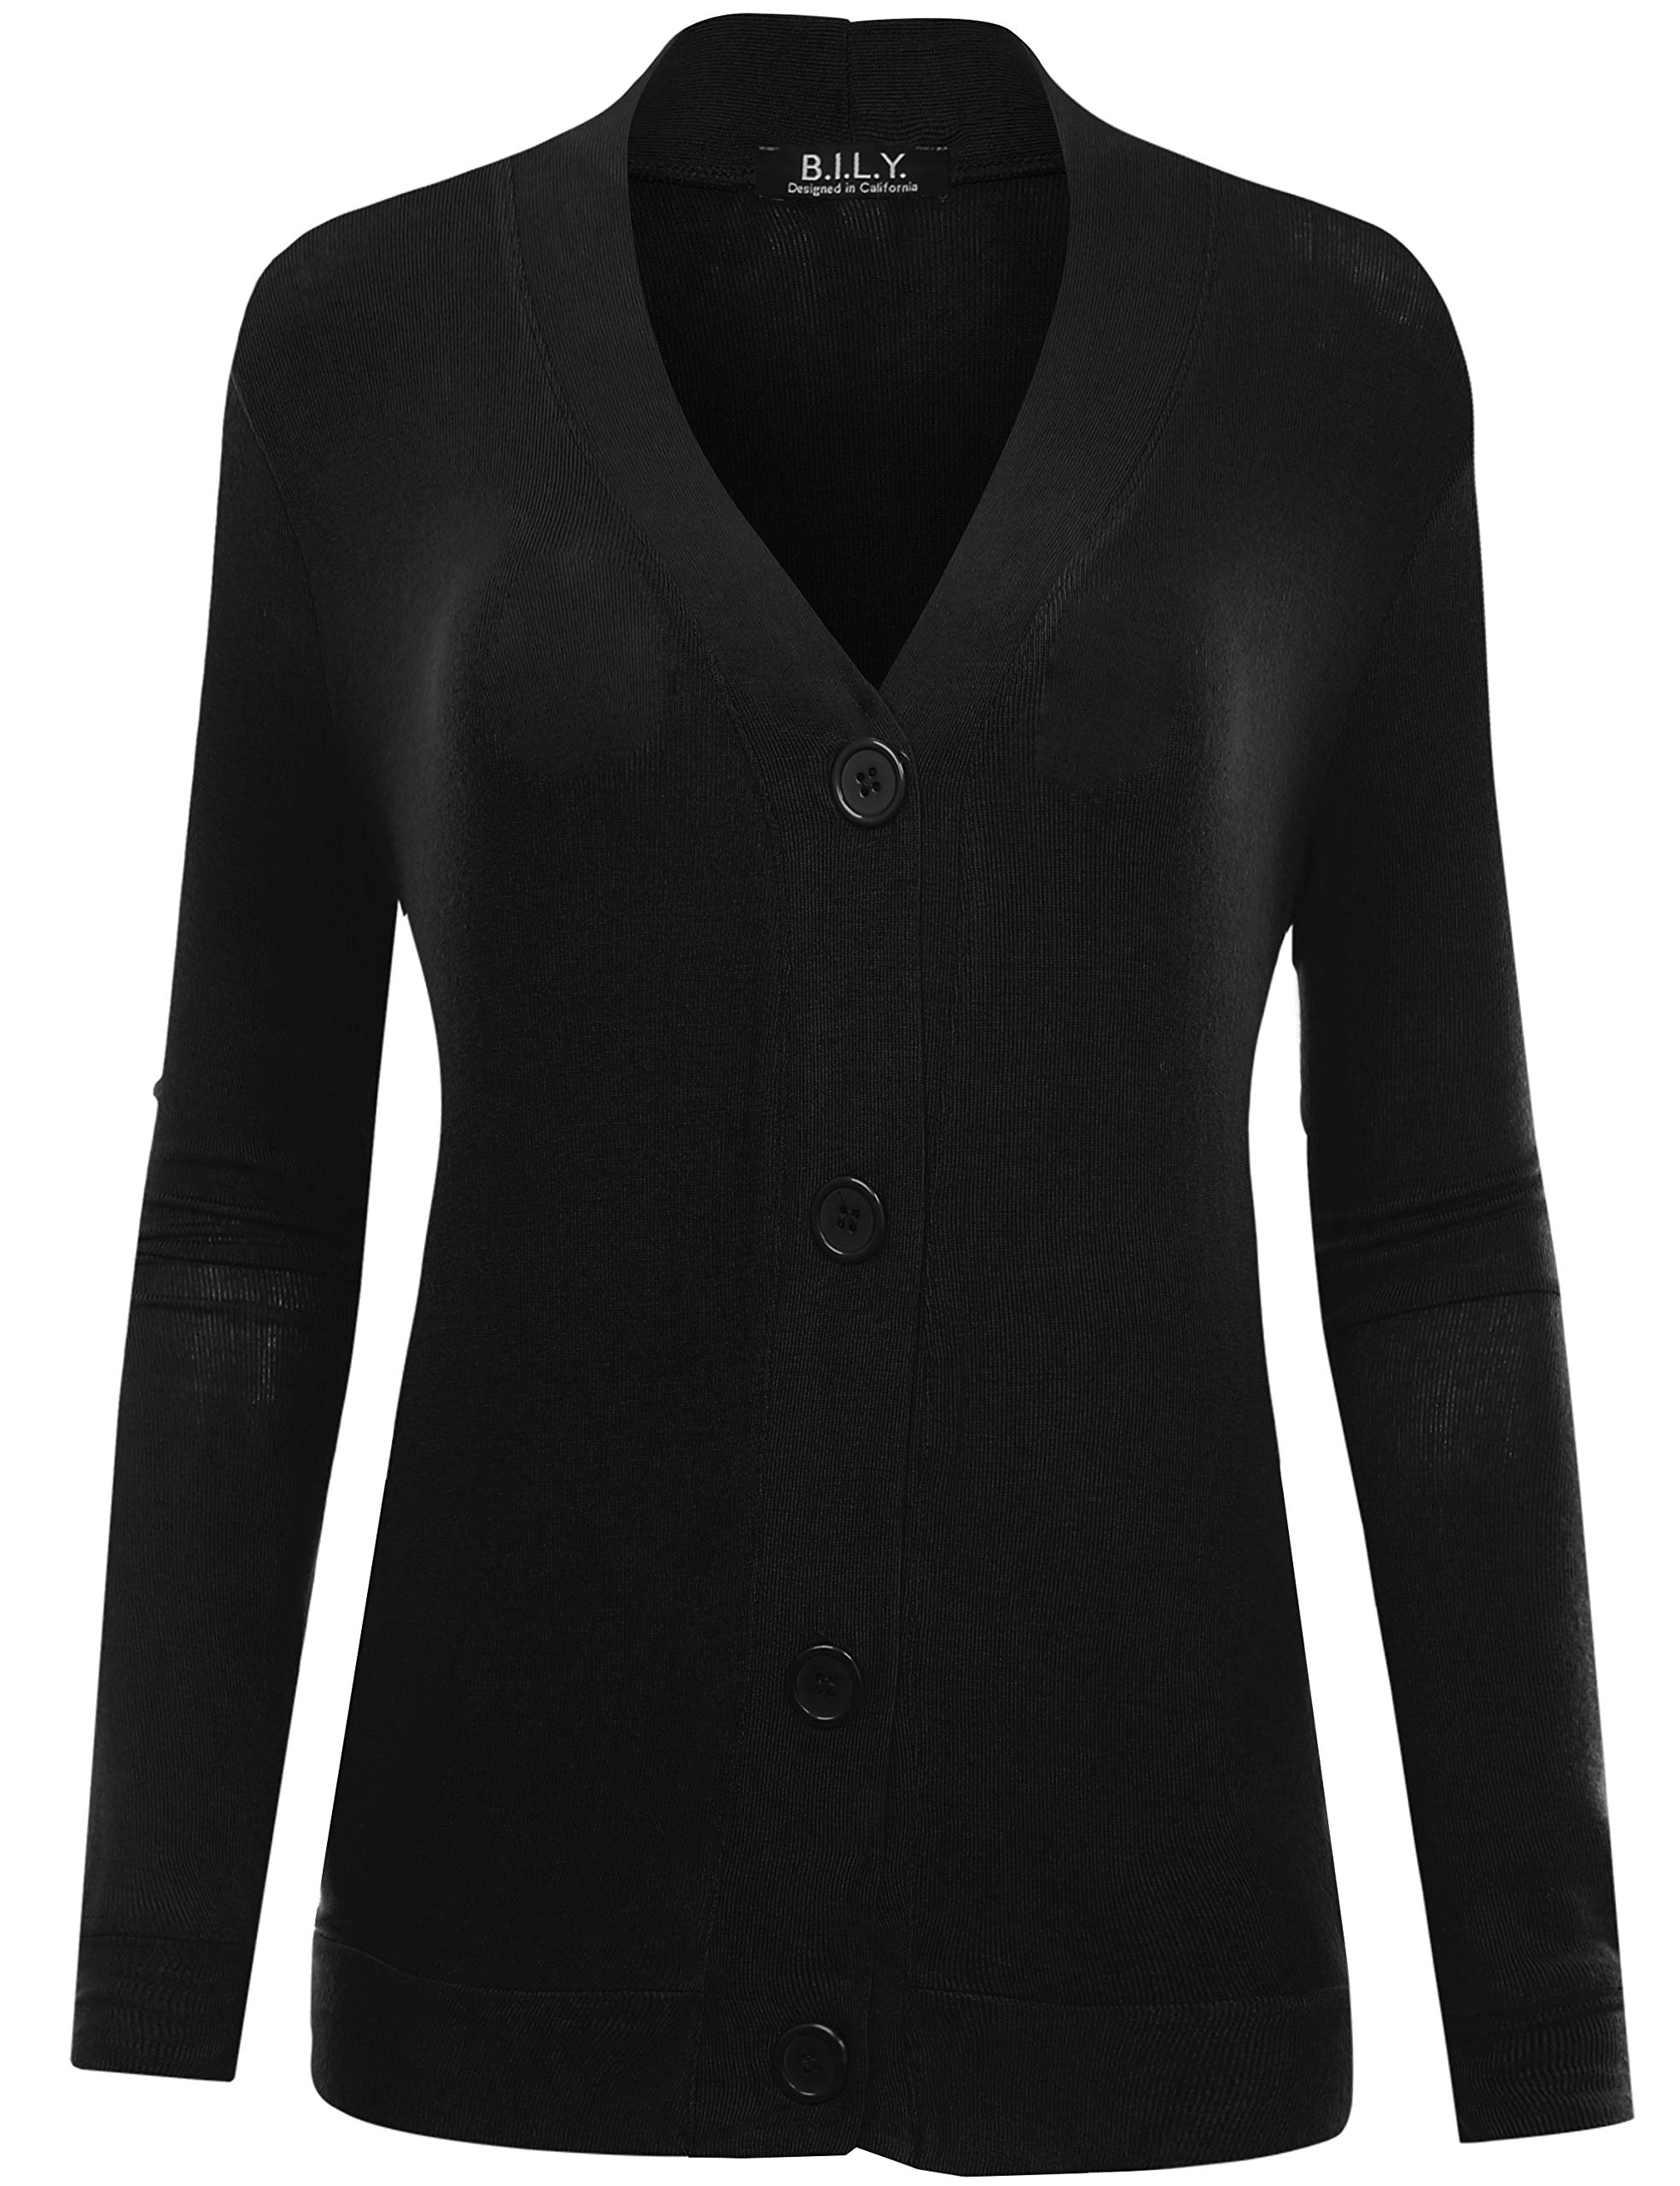 BH B.I.L.Y USA Women's Button Sweater Cardigan with Pockets Black Small